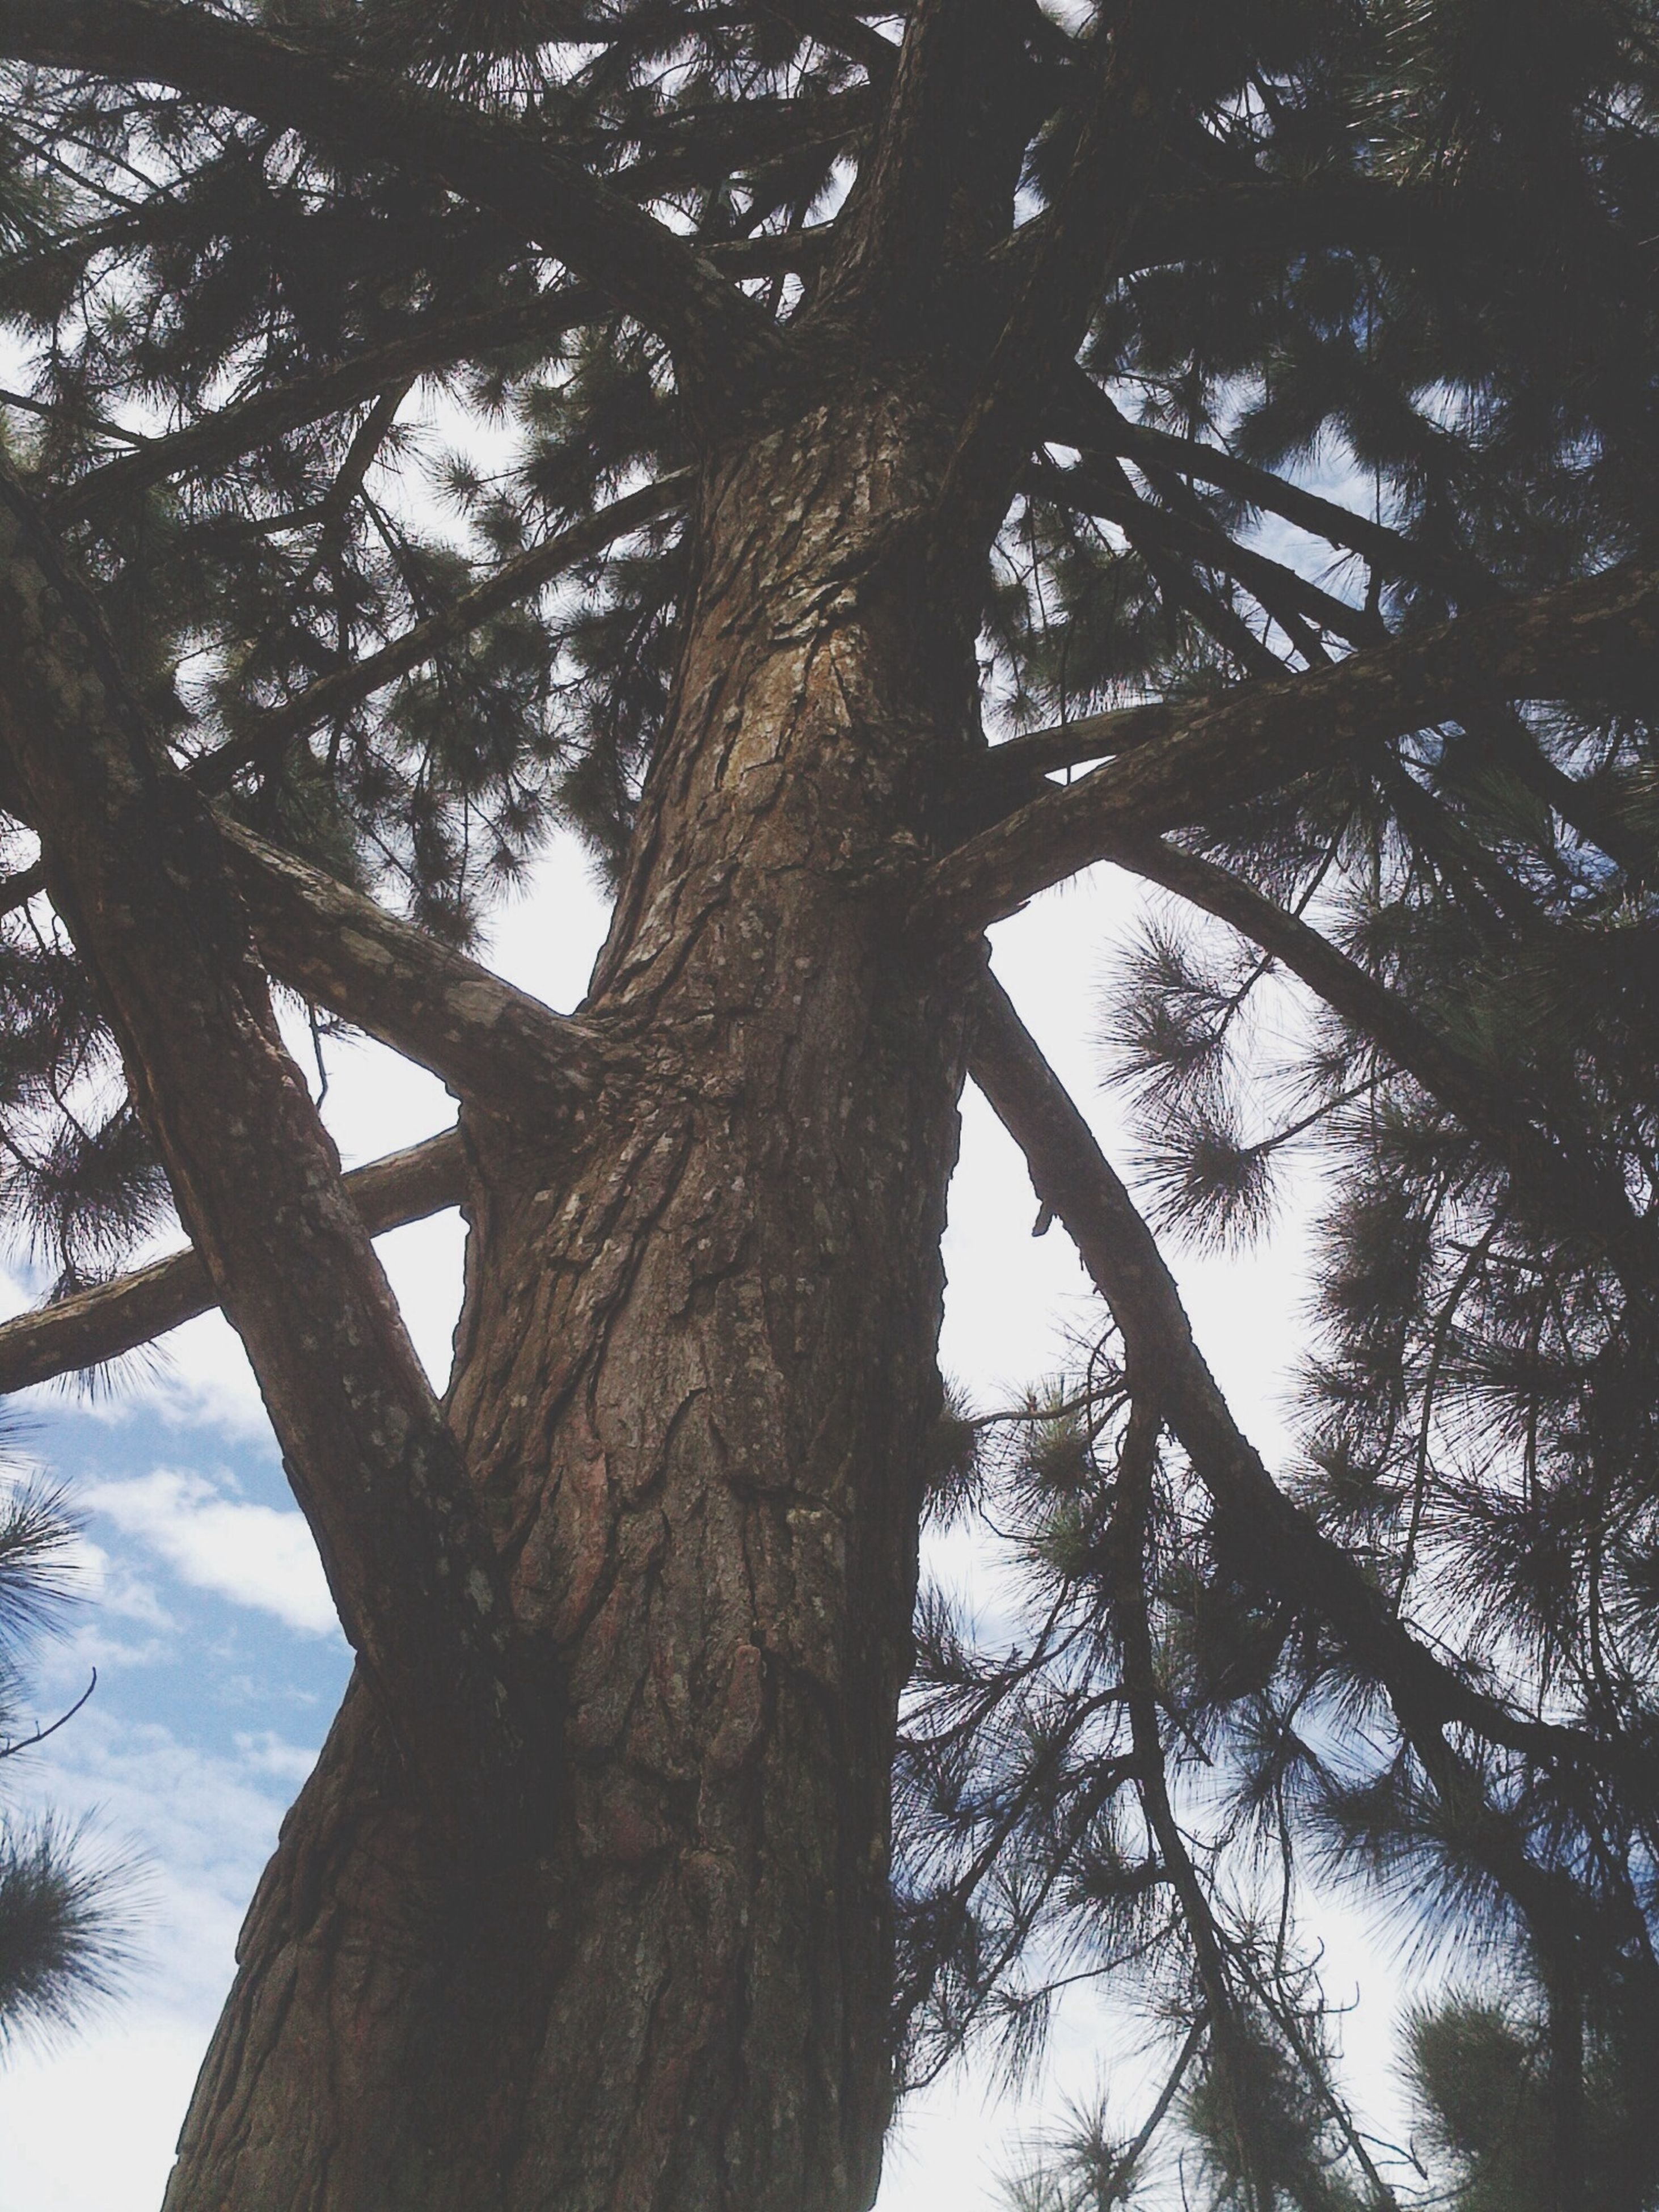 tree, low angle view, branch, tree trunk, growth, sky, nature, tranquility, day, outdoors, beauty in nature, no people, sunlight, wood - material, part of, close-up, textured, scenics, bark, forest